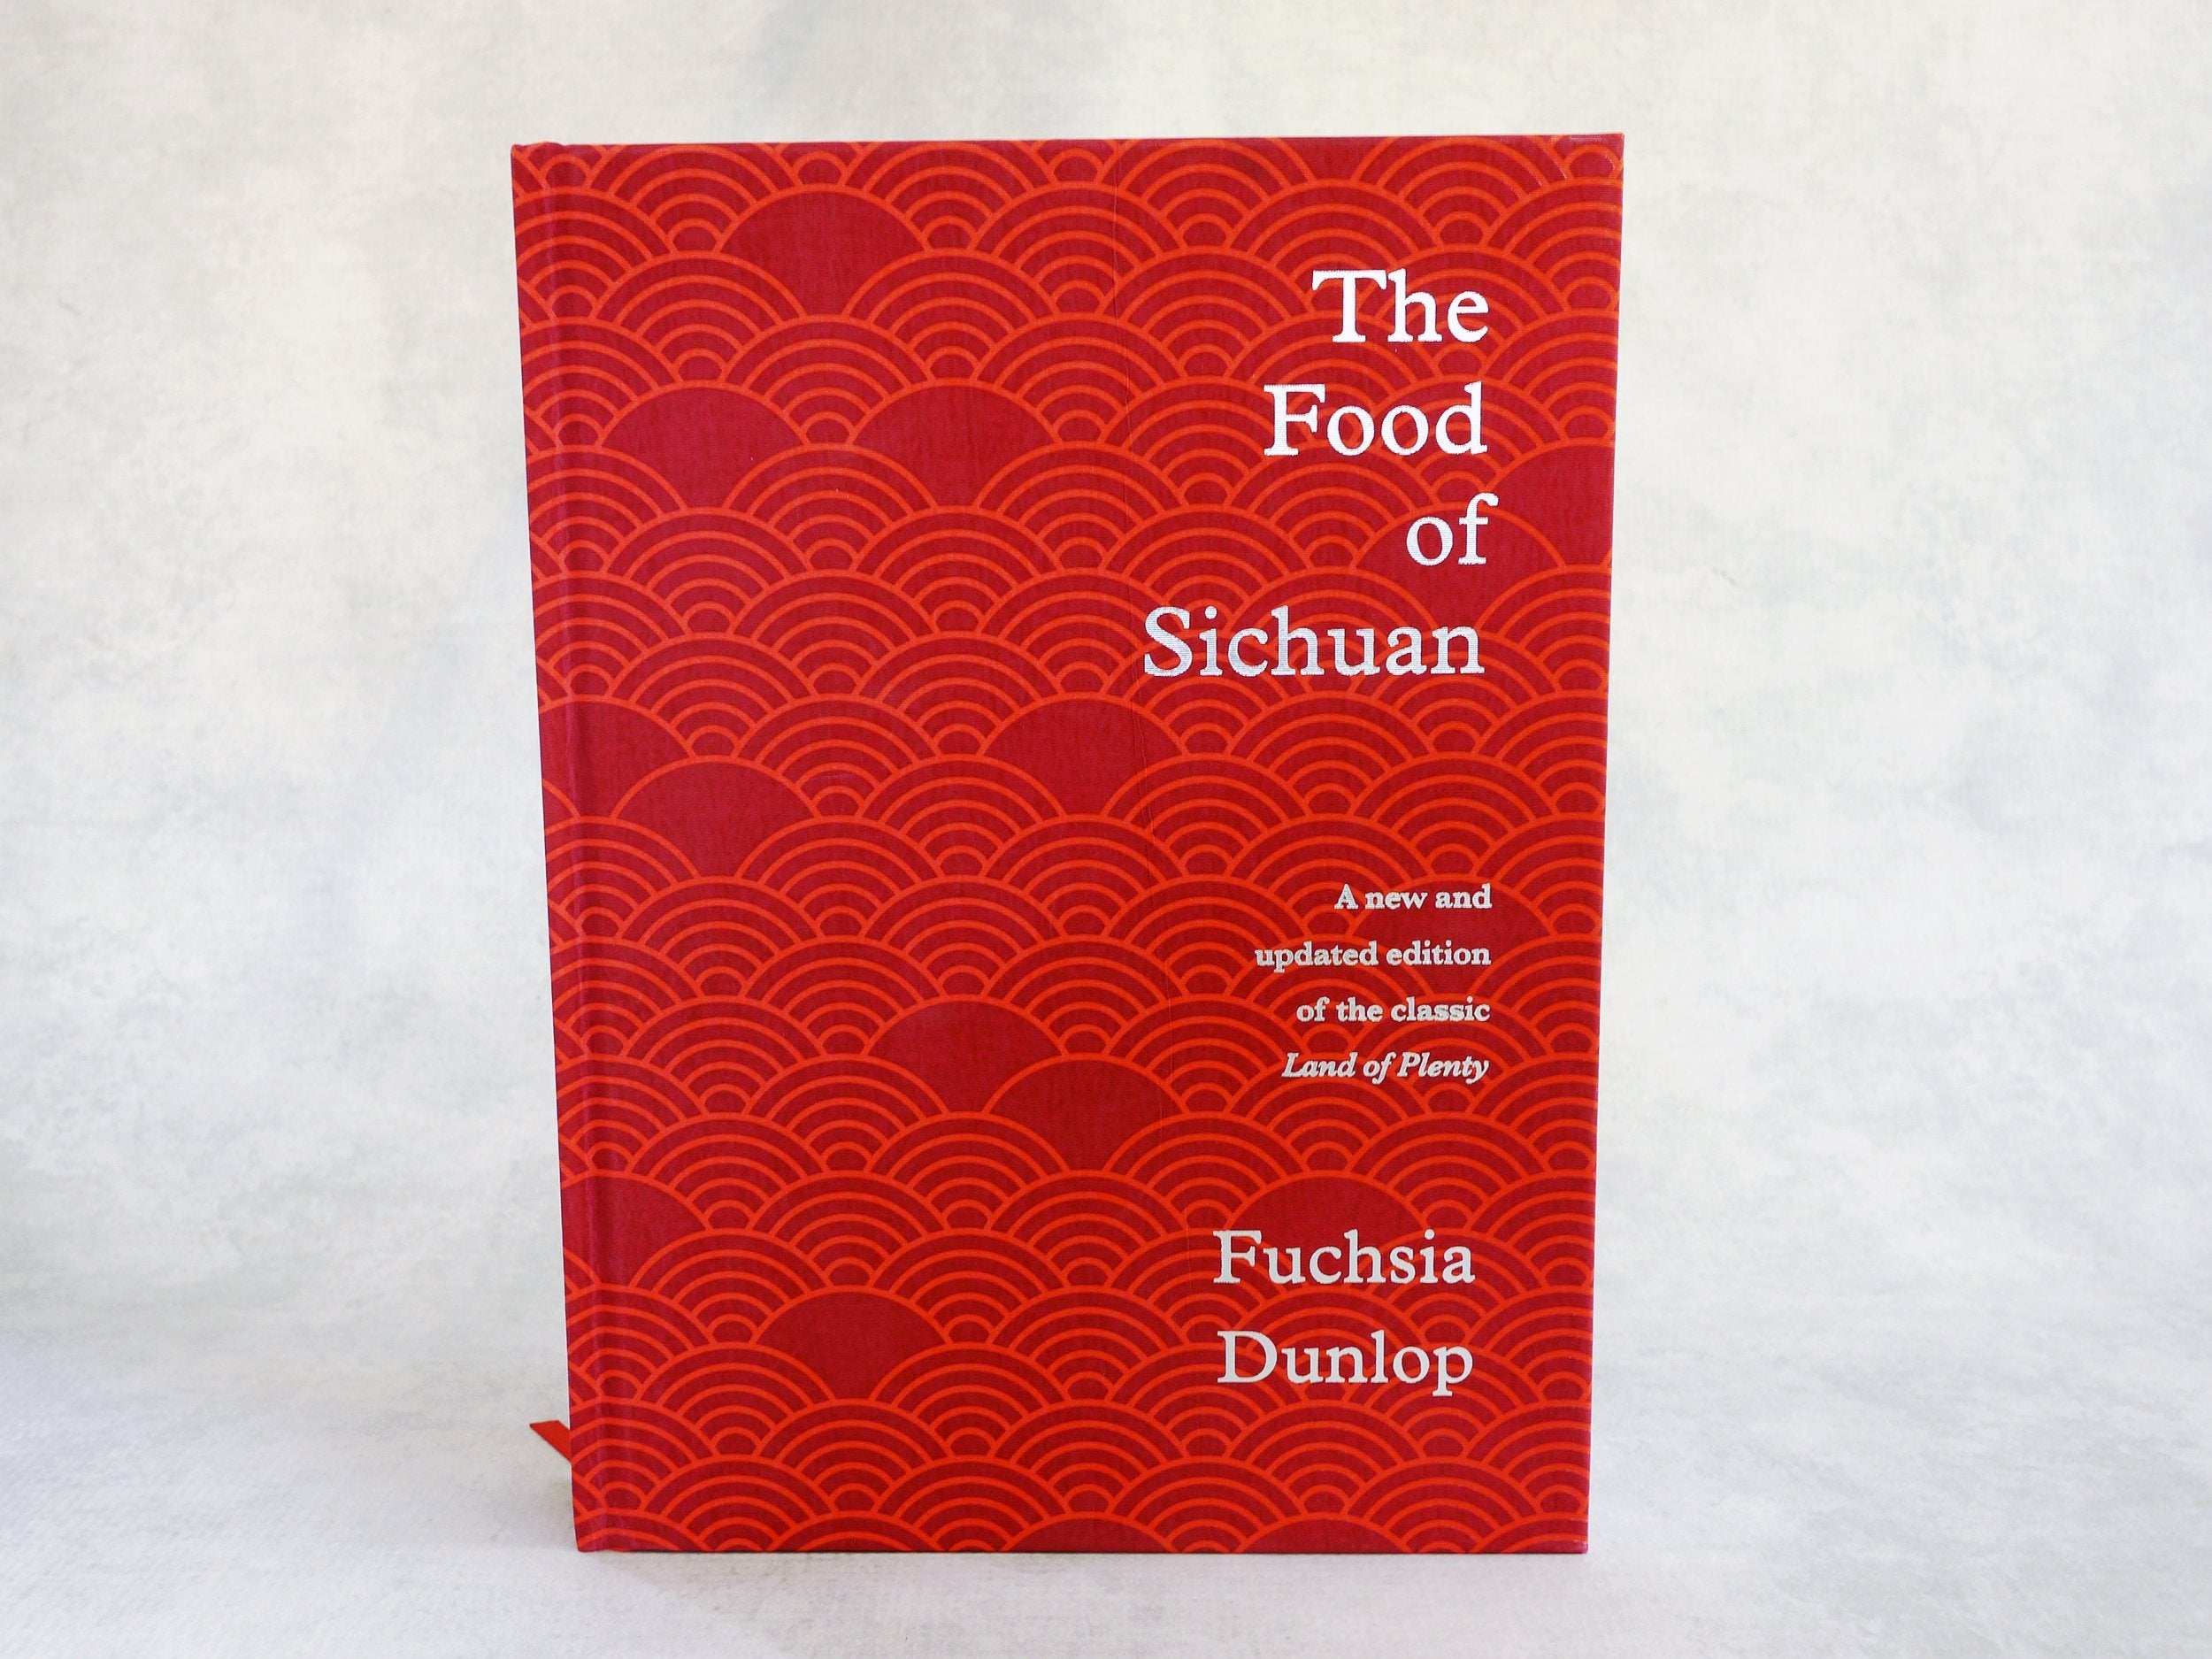 The Food of Sichuan (Newest Cookbook From Fuchsia Dunlop)